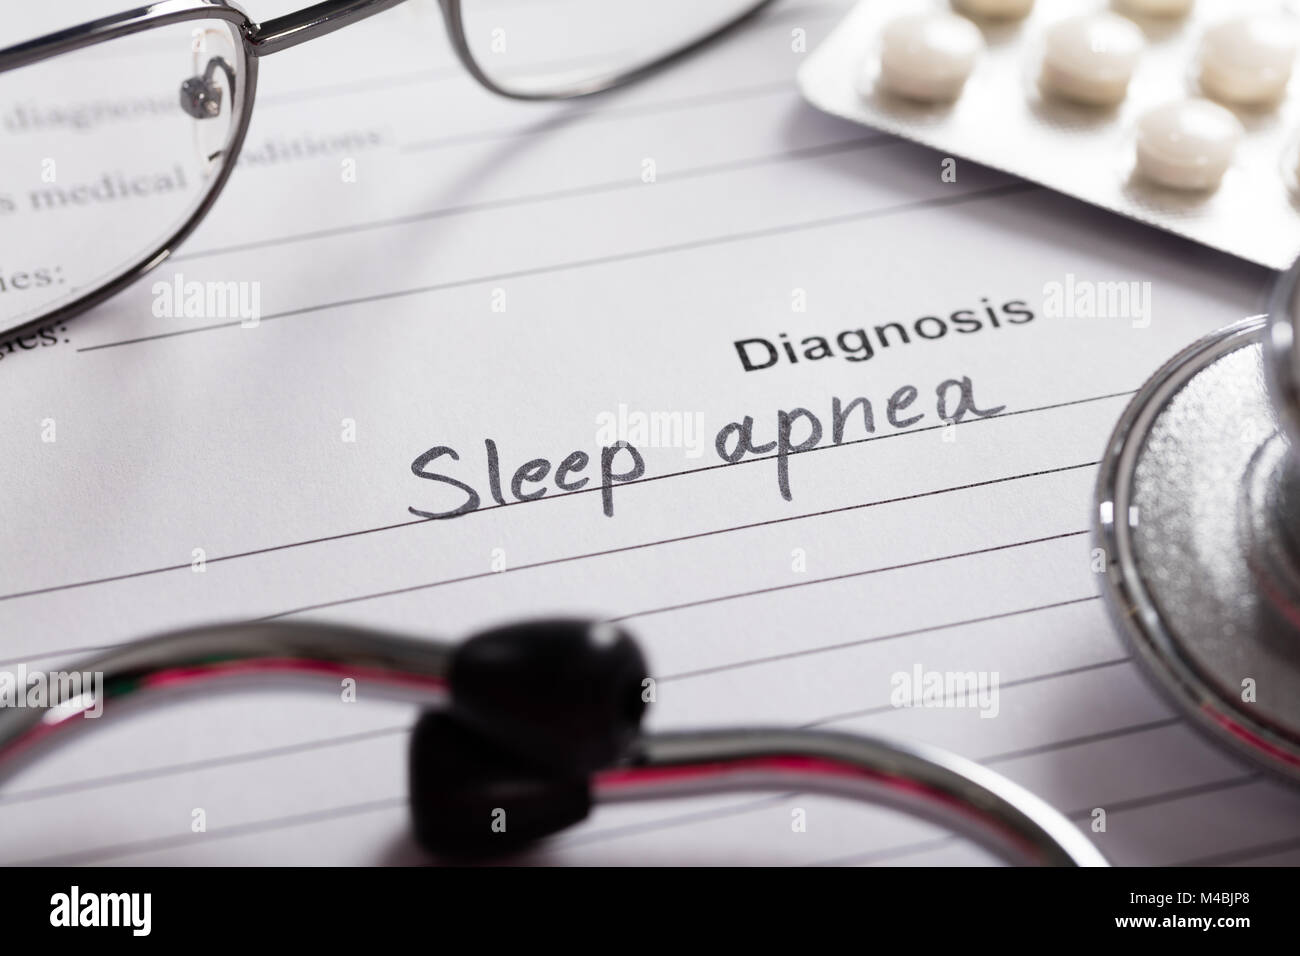 sleep deprivationdisordersand drugs essay Sleep deprivation is one a report on sleep deprivation psychology essay print if you are the original writer of this essay and no longer wish to have the.